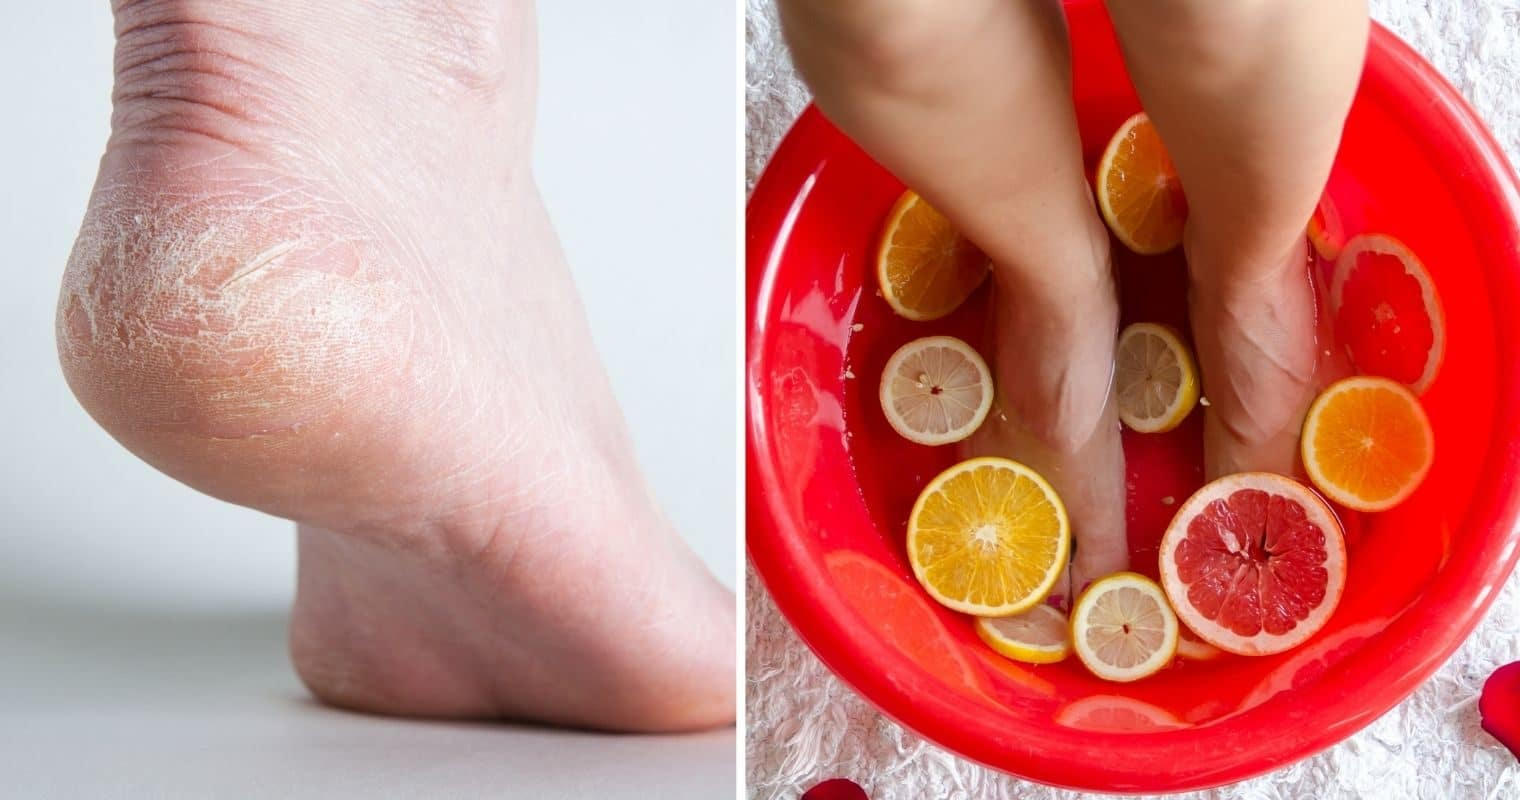 Tips To Remove Dry, Cracked Skin From Feet And Legs